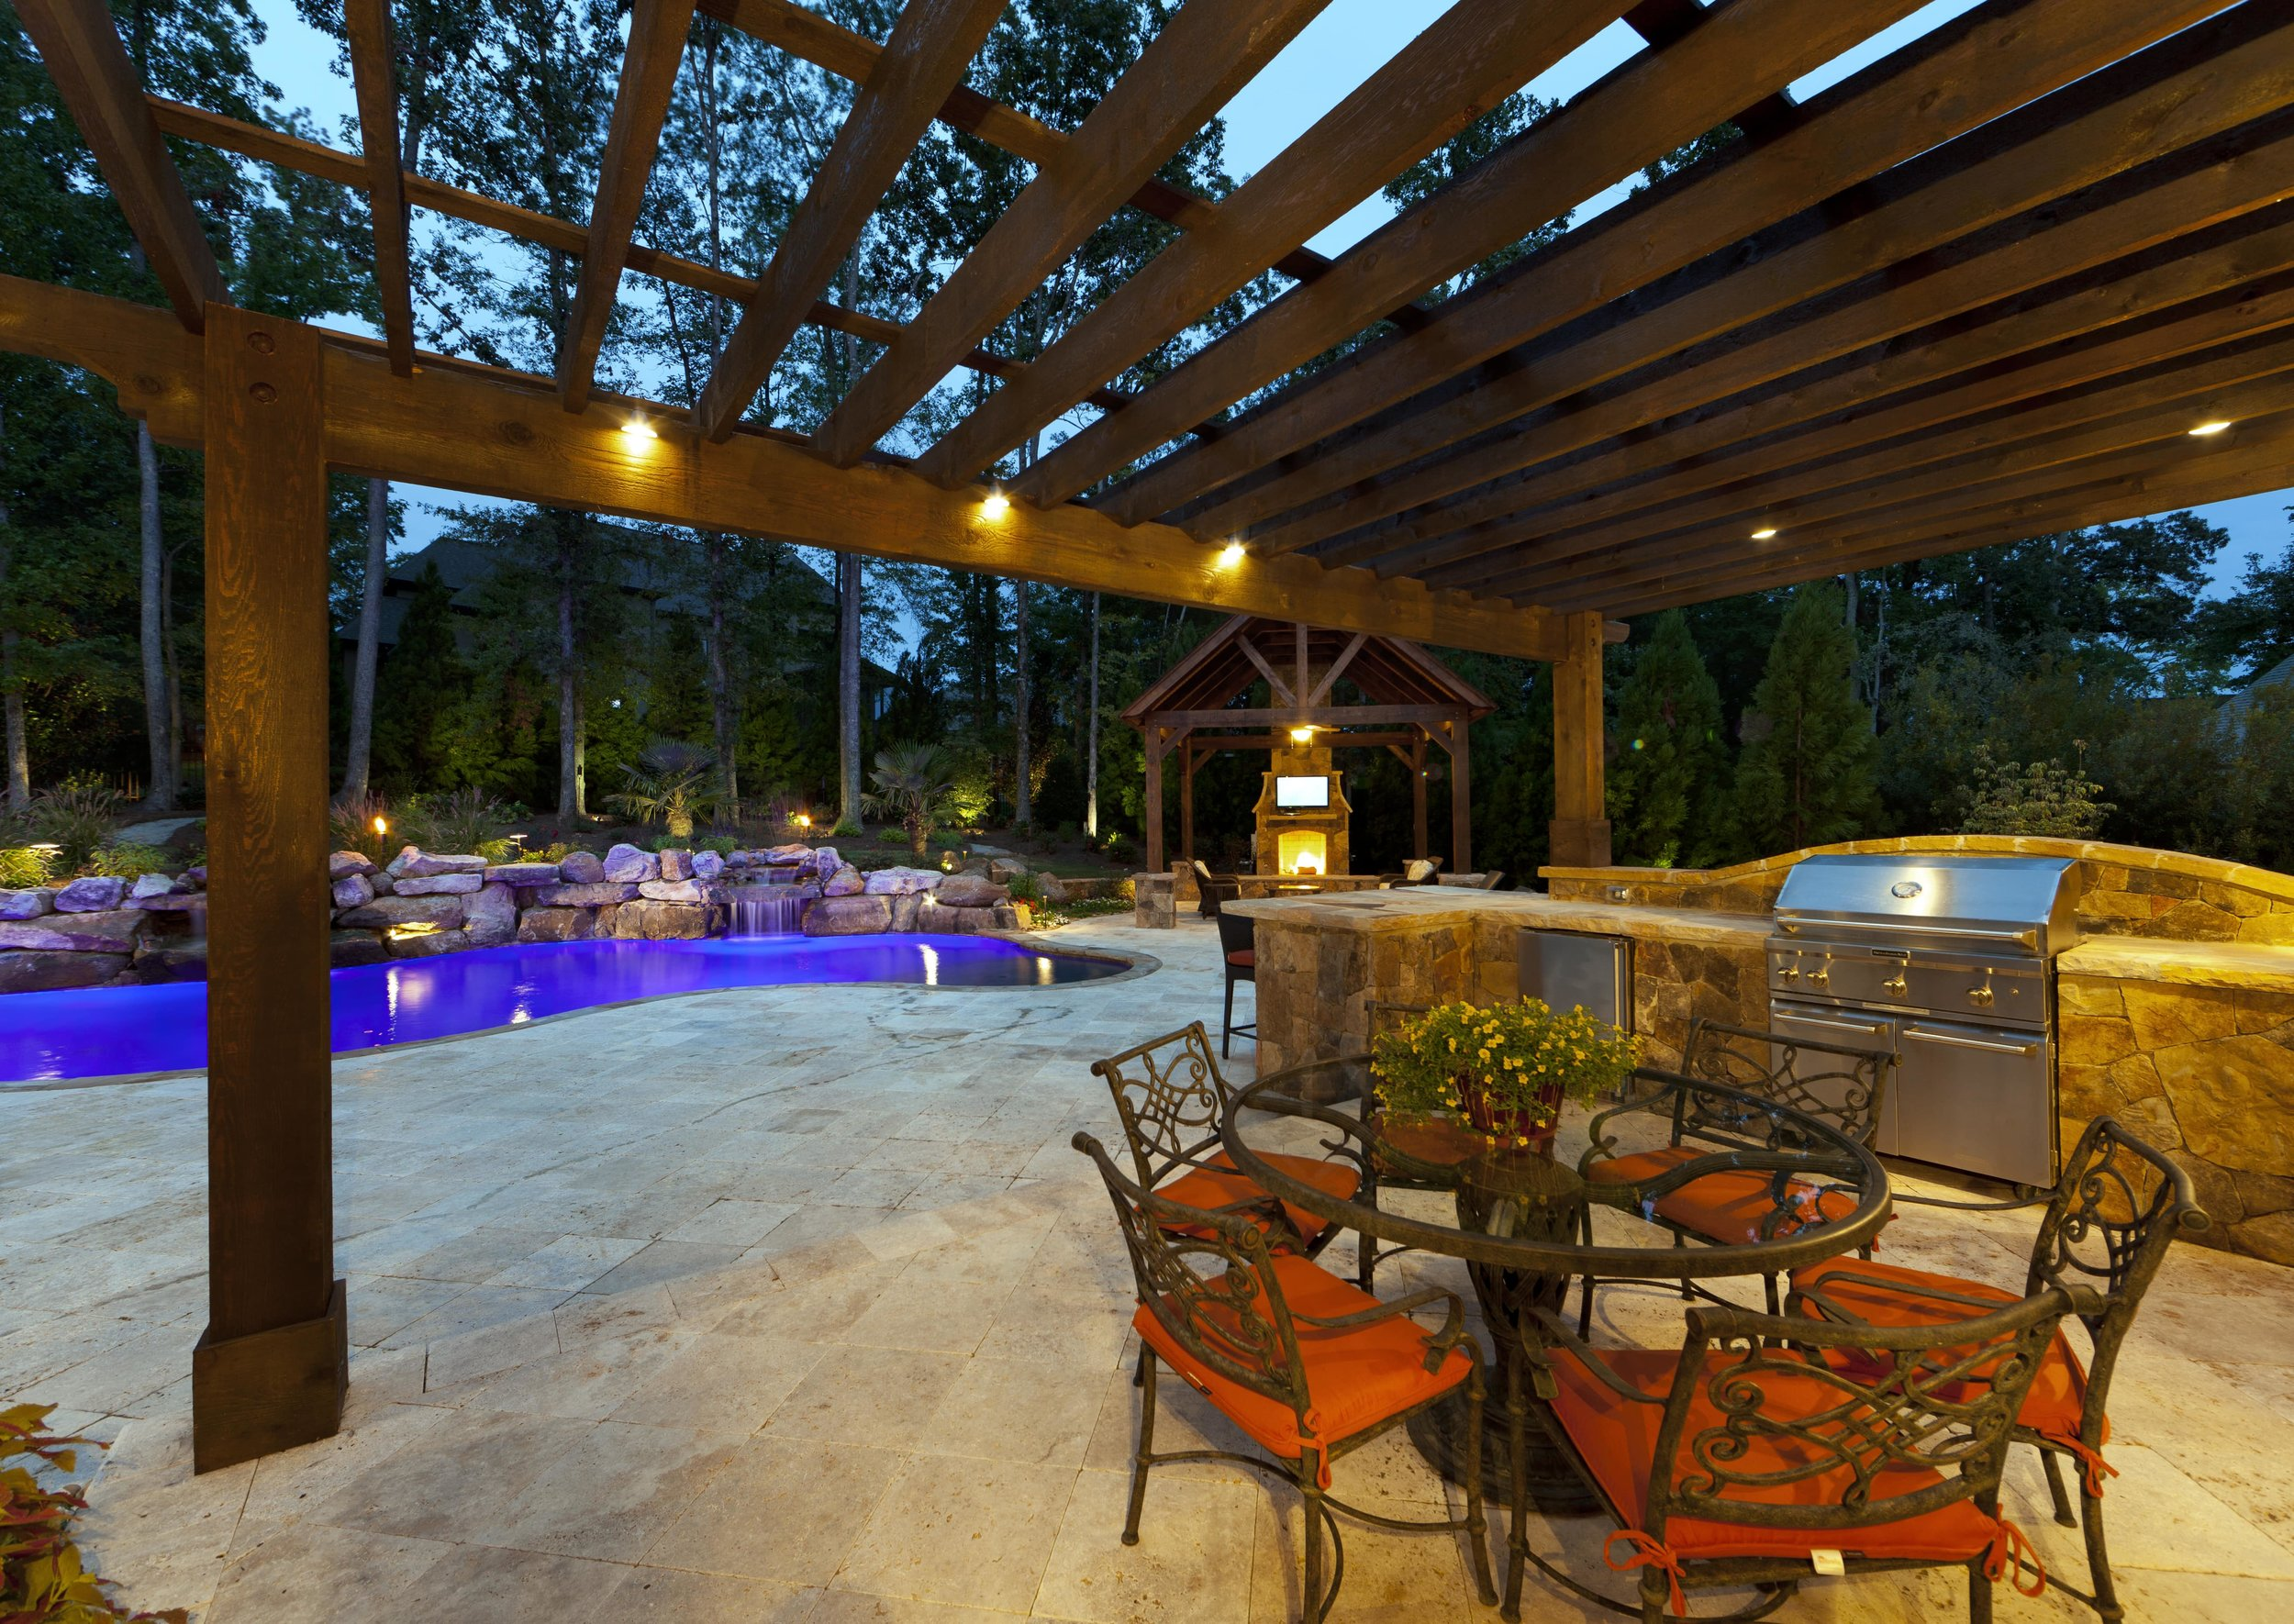 Such a great outdoor space was added for this family.  Pergola over the dining and grilling areas far enough away from the pool to keep the adults dry.  The cabana with TV, fireplace, and relaxing seating, provides yet another place for the adults to relax when not in the pool.  The travertine pool decking flows seamlessly into all areas.